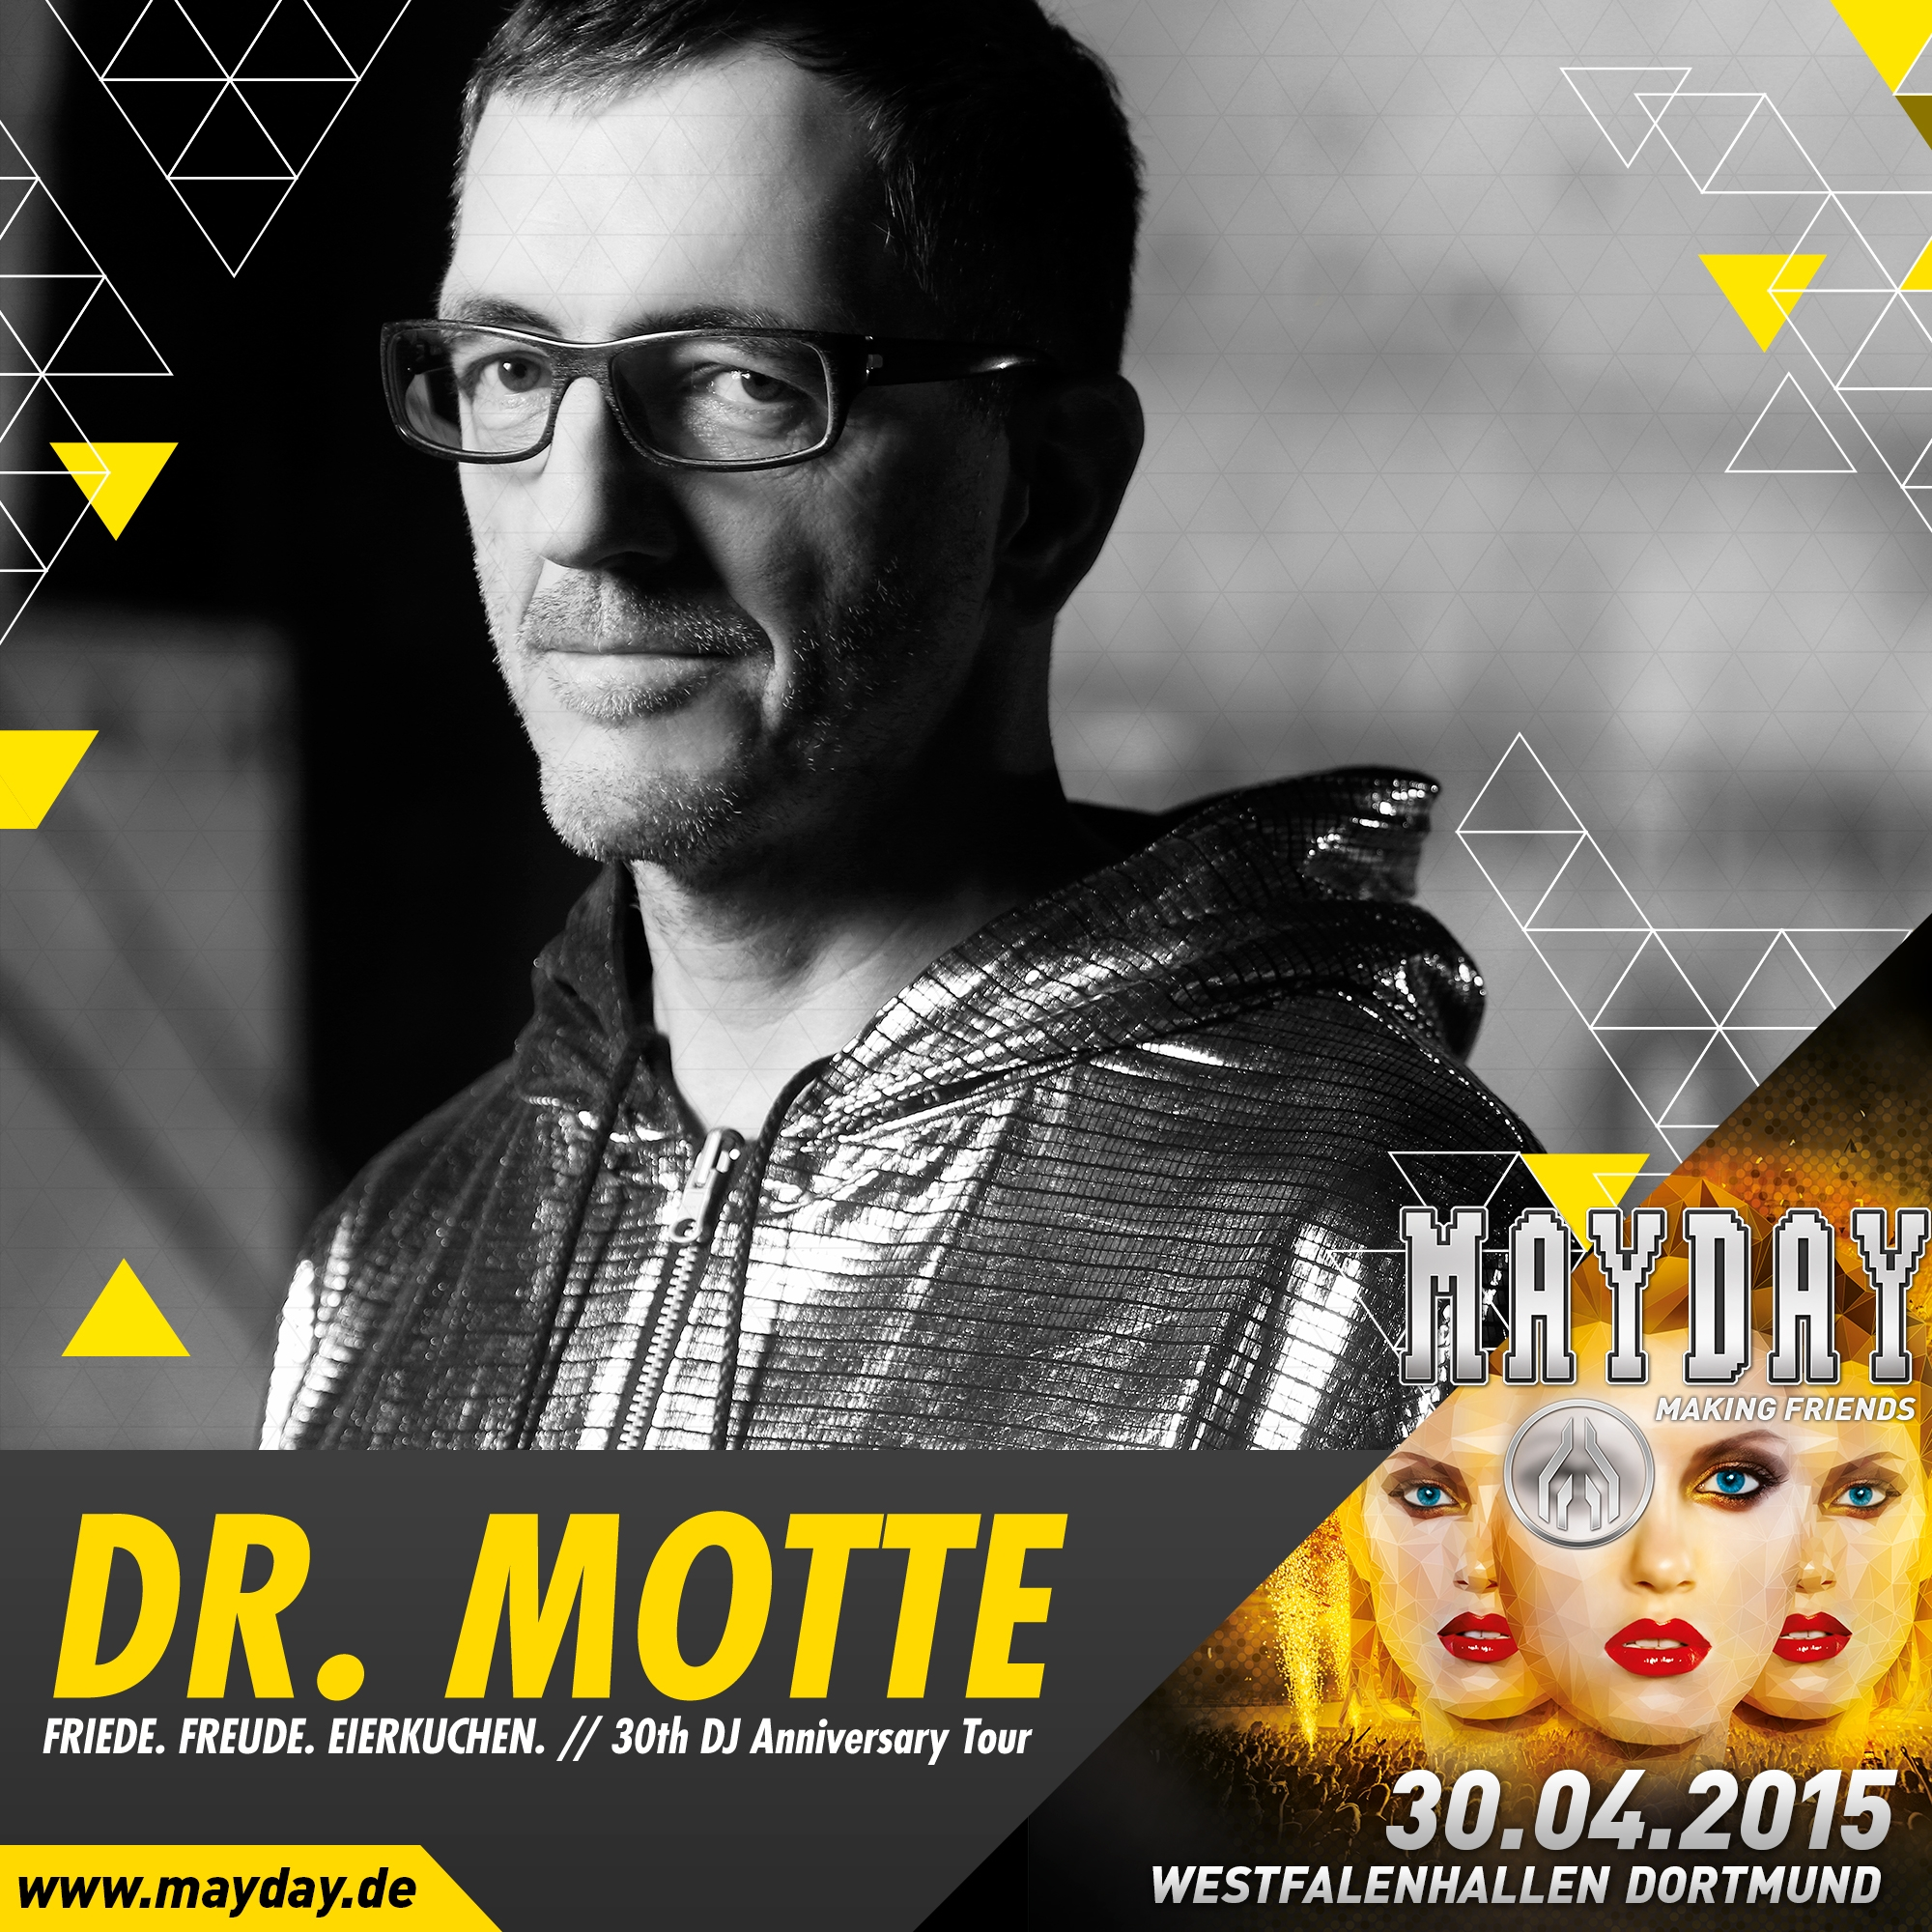 Dr. Mottes Vinyl Only DJ Set From MAYDAY 2015